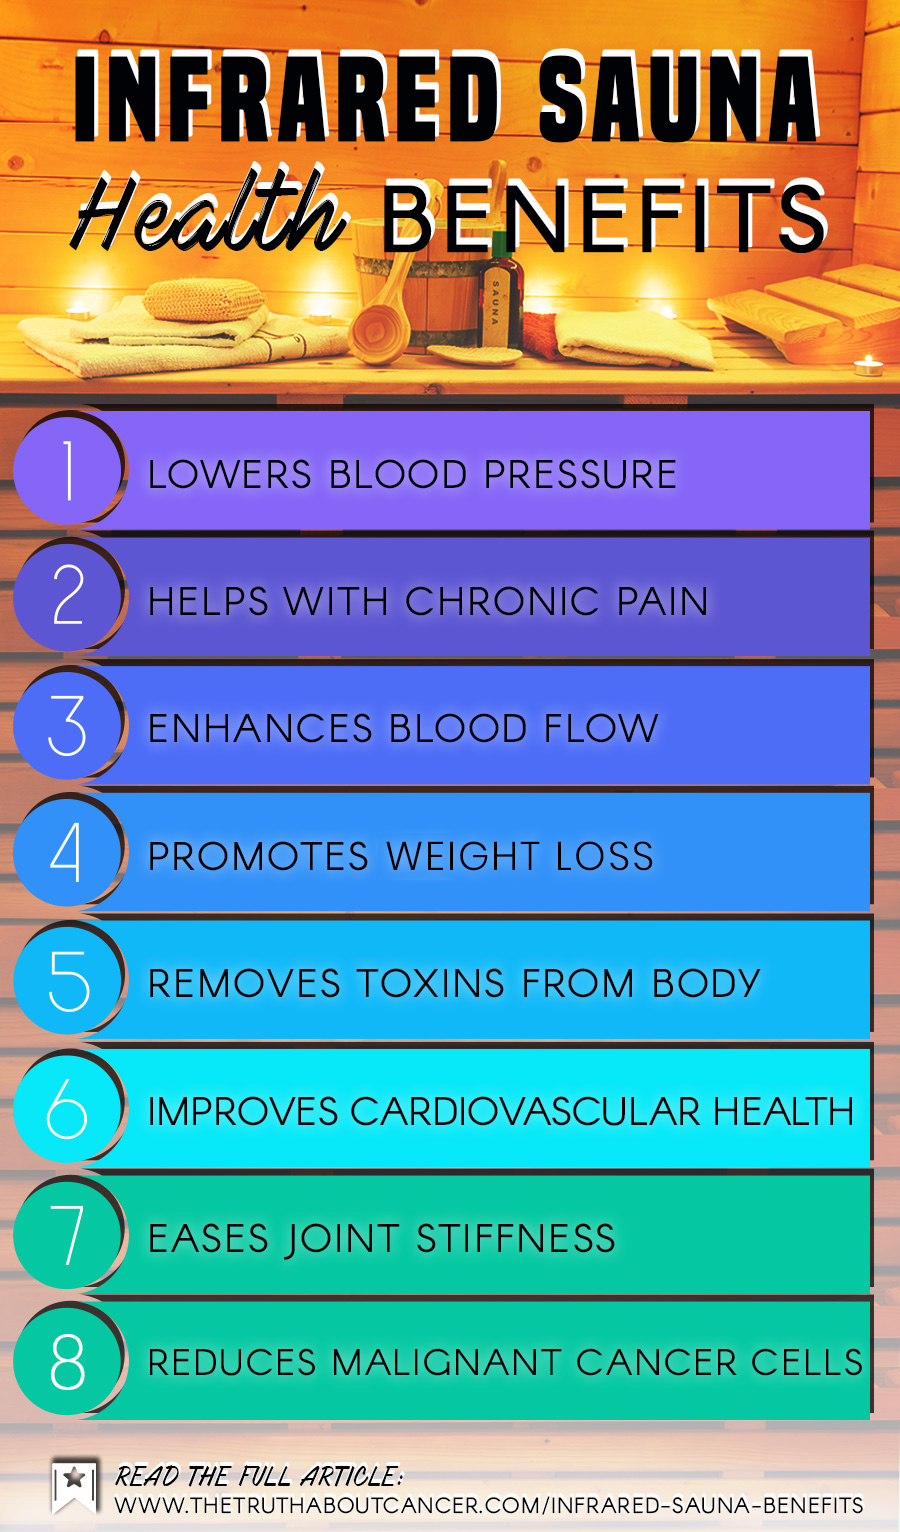 Infrared Sauna Benefits for Cancer & Other Healing